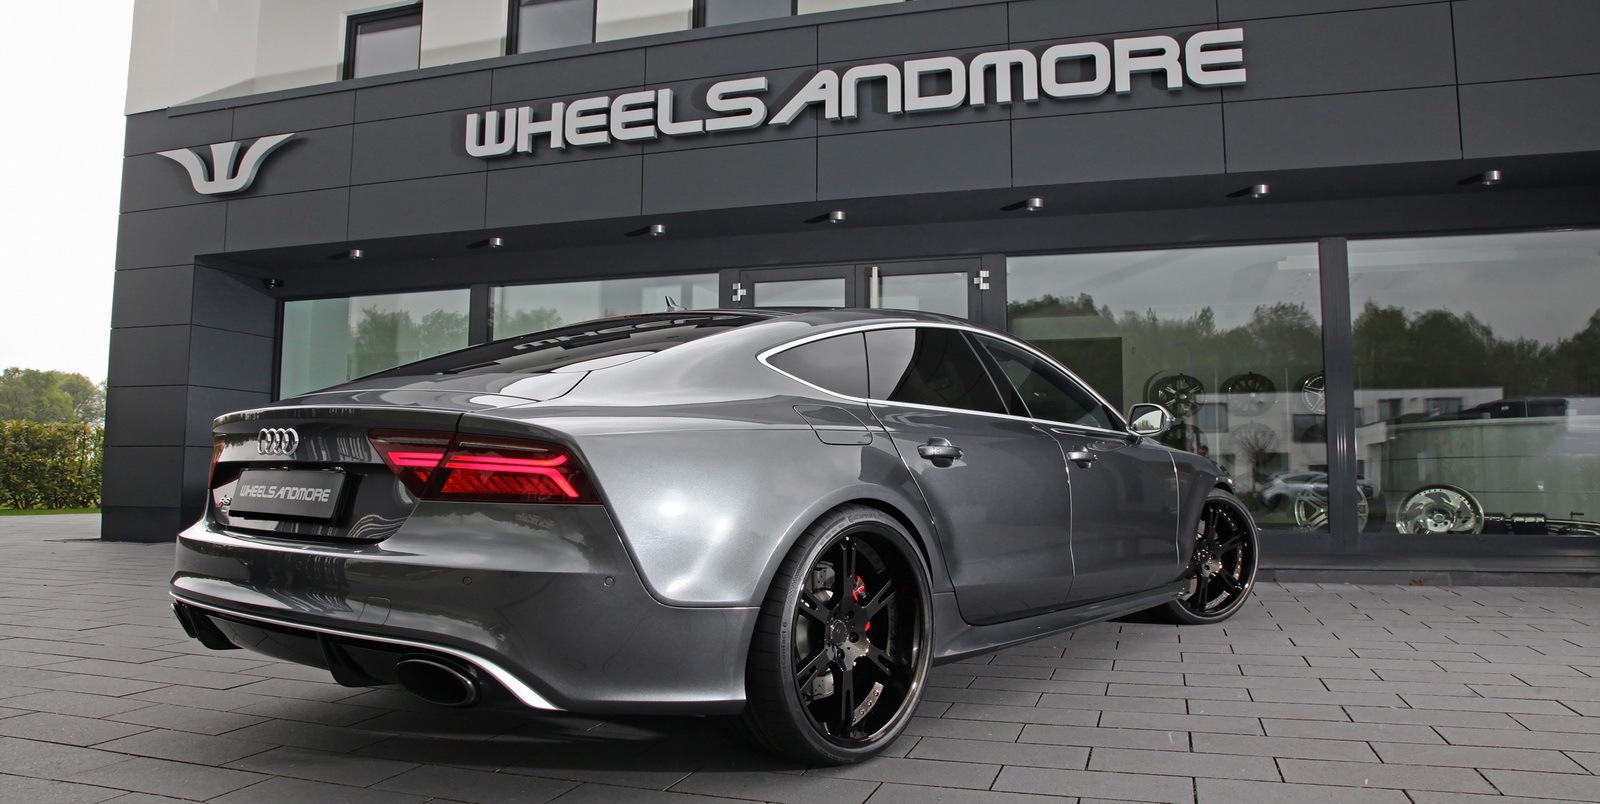 Wheelsandmore Upgrade RS6, RS7 and R8 Spyder Significantly